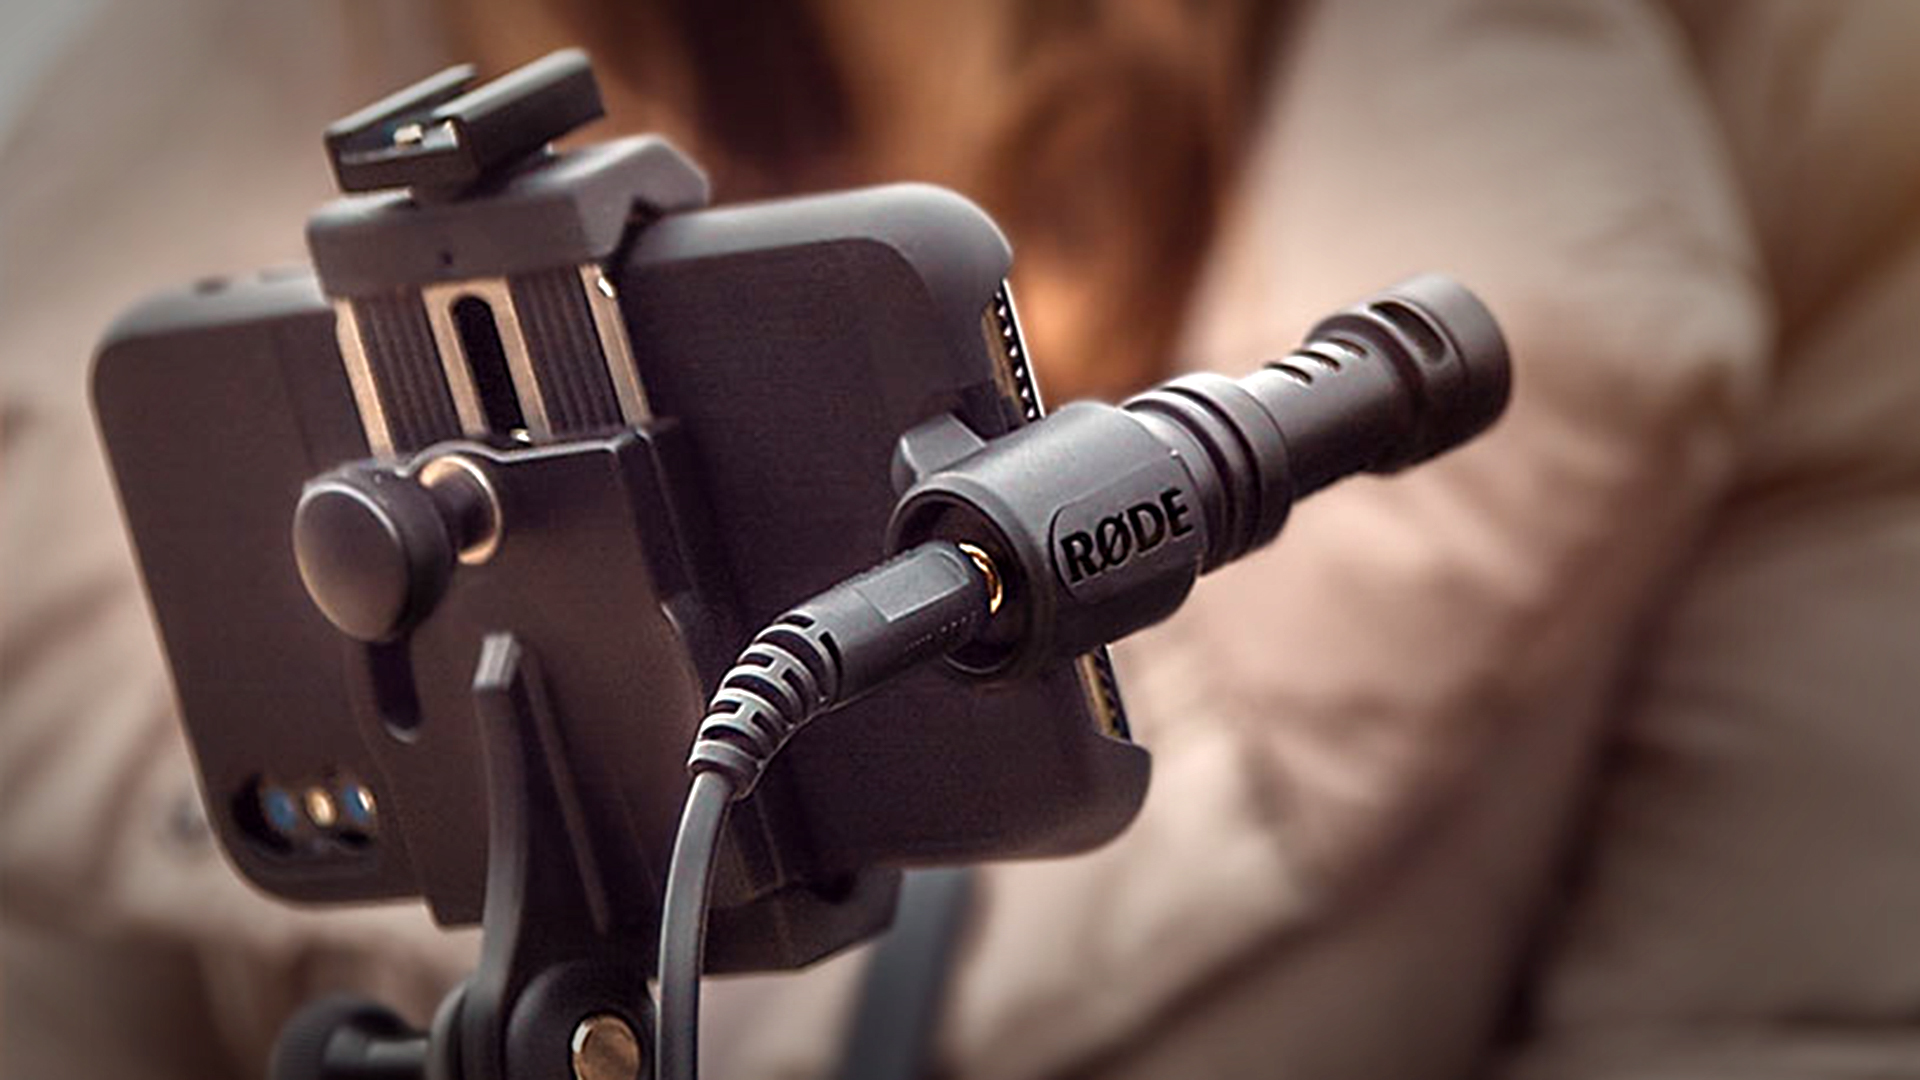 Rode Mic For Iphone